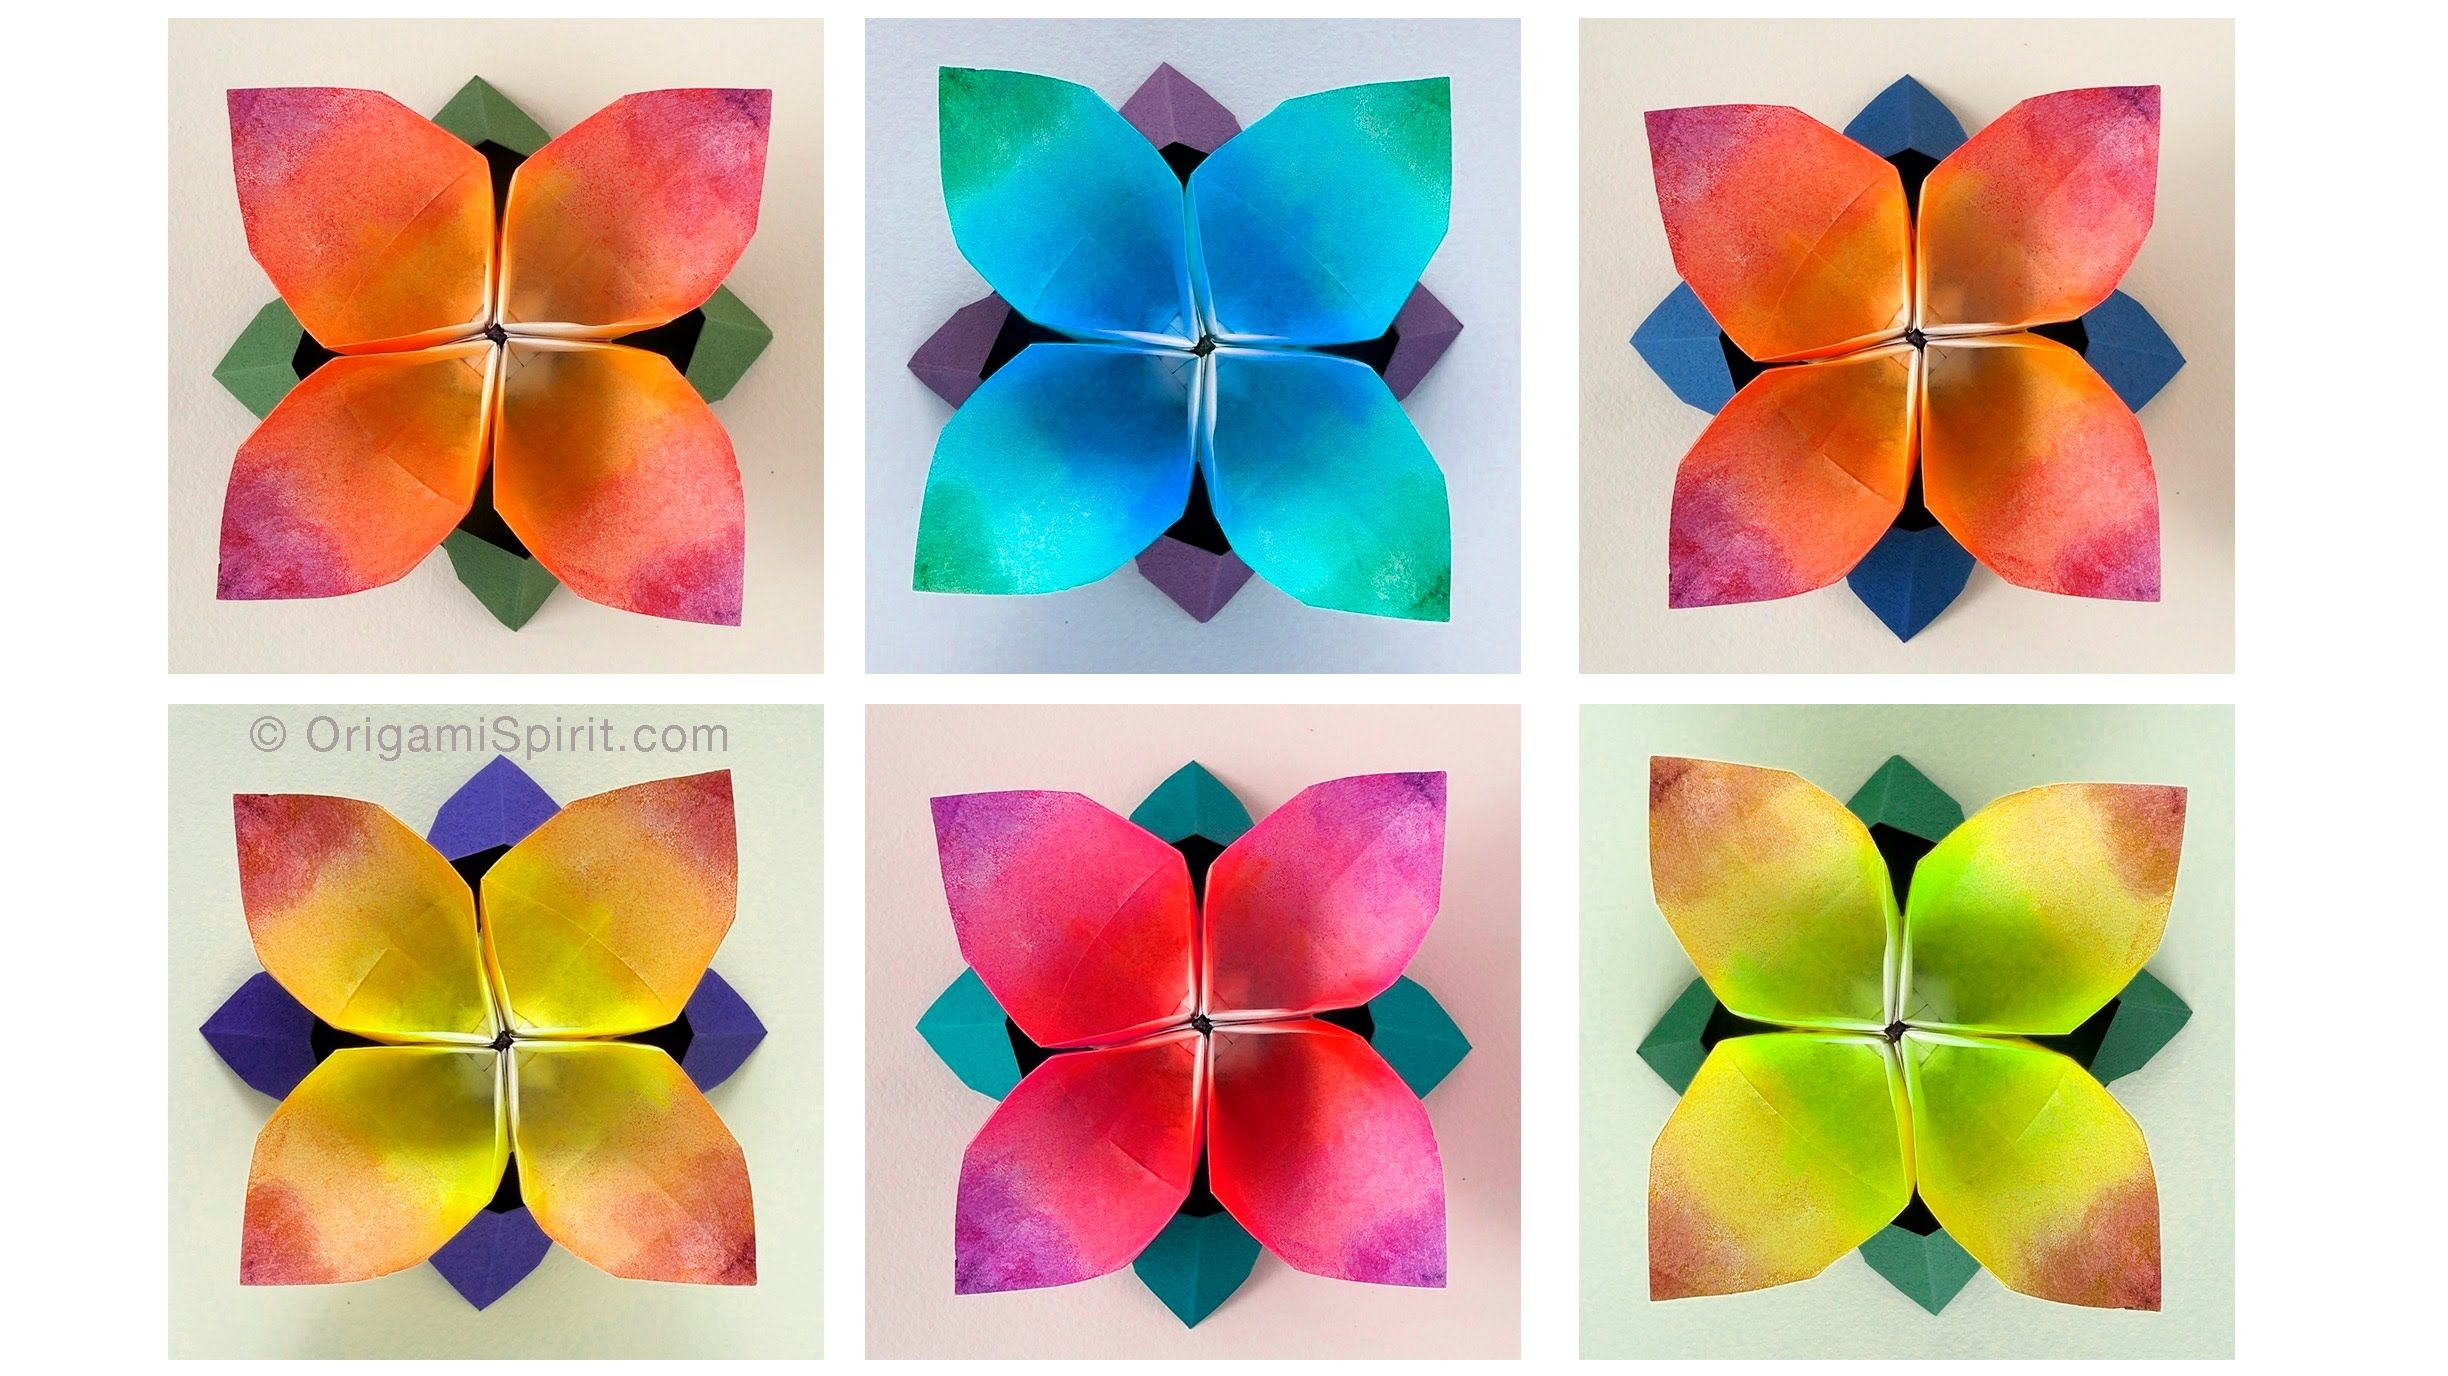 Origami Tutorial And Video Instruction On How To Make A Four Petal